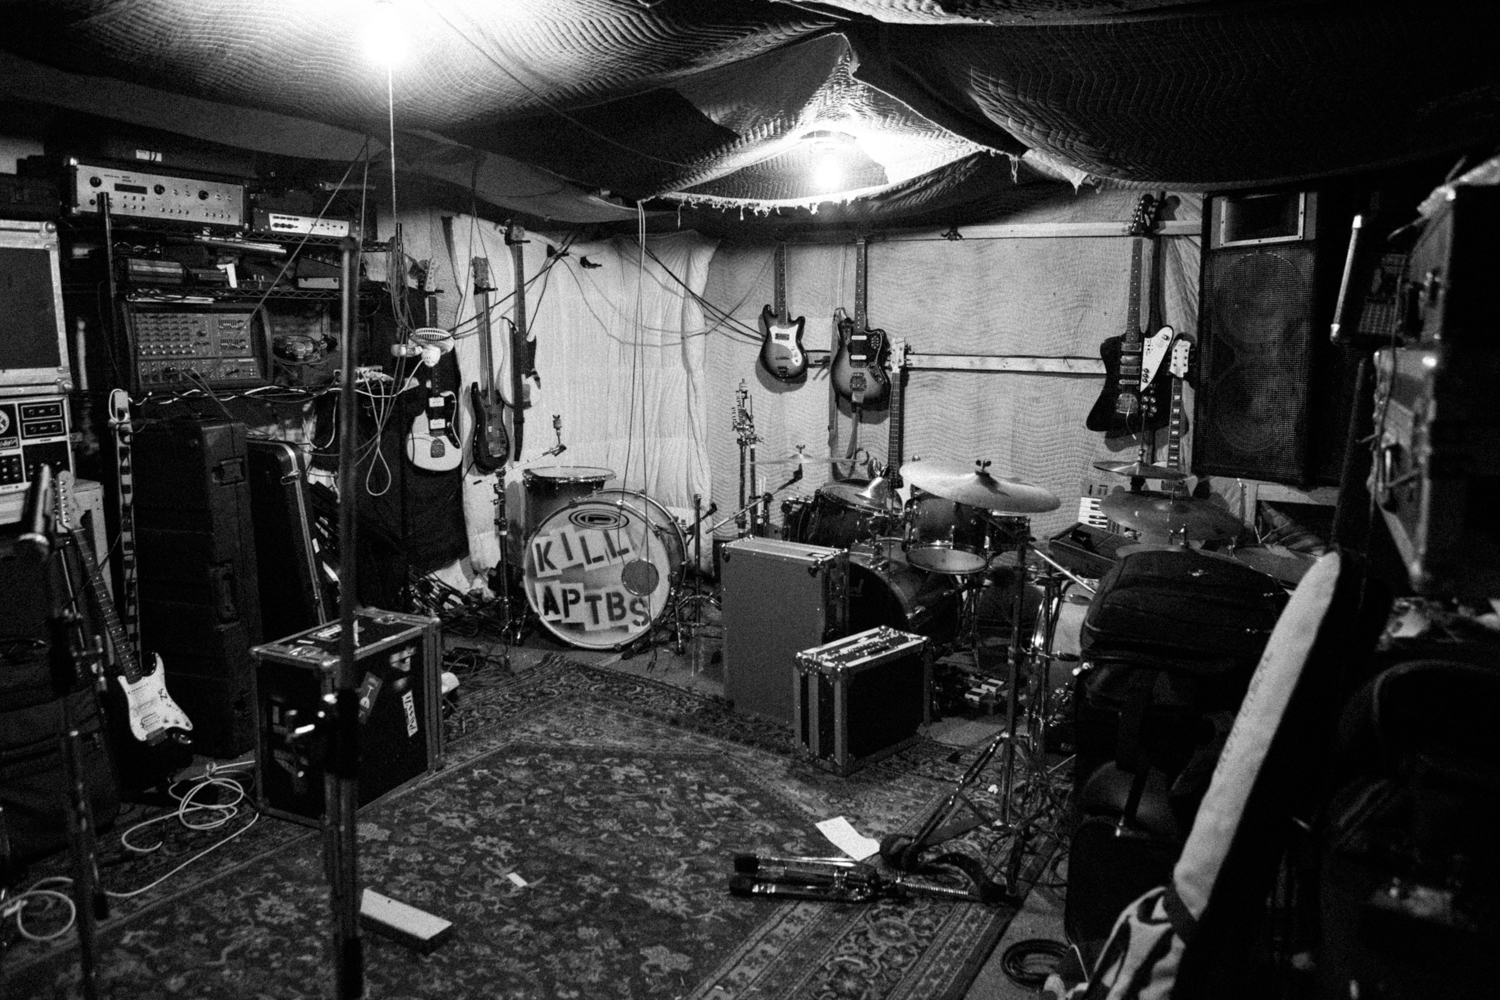 A Place To Bury Strangers recording their album Transfixiation at Death By Audio, 2013